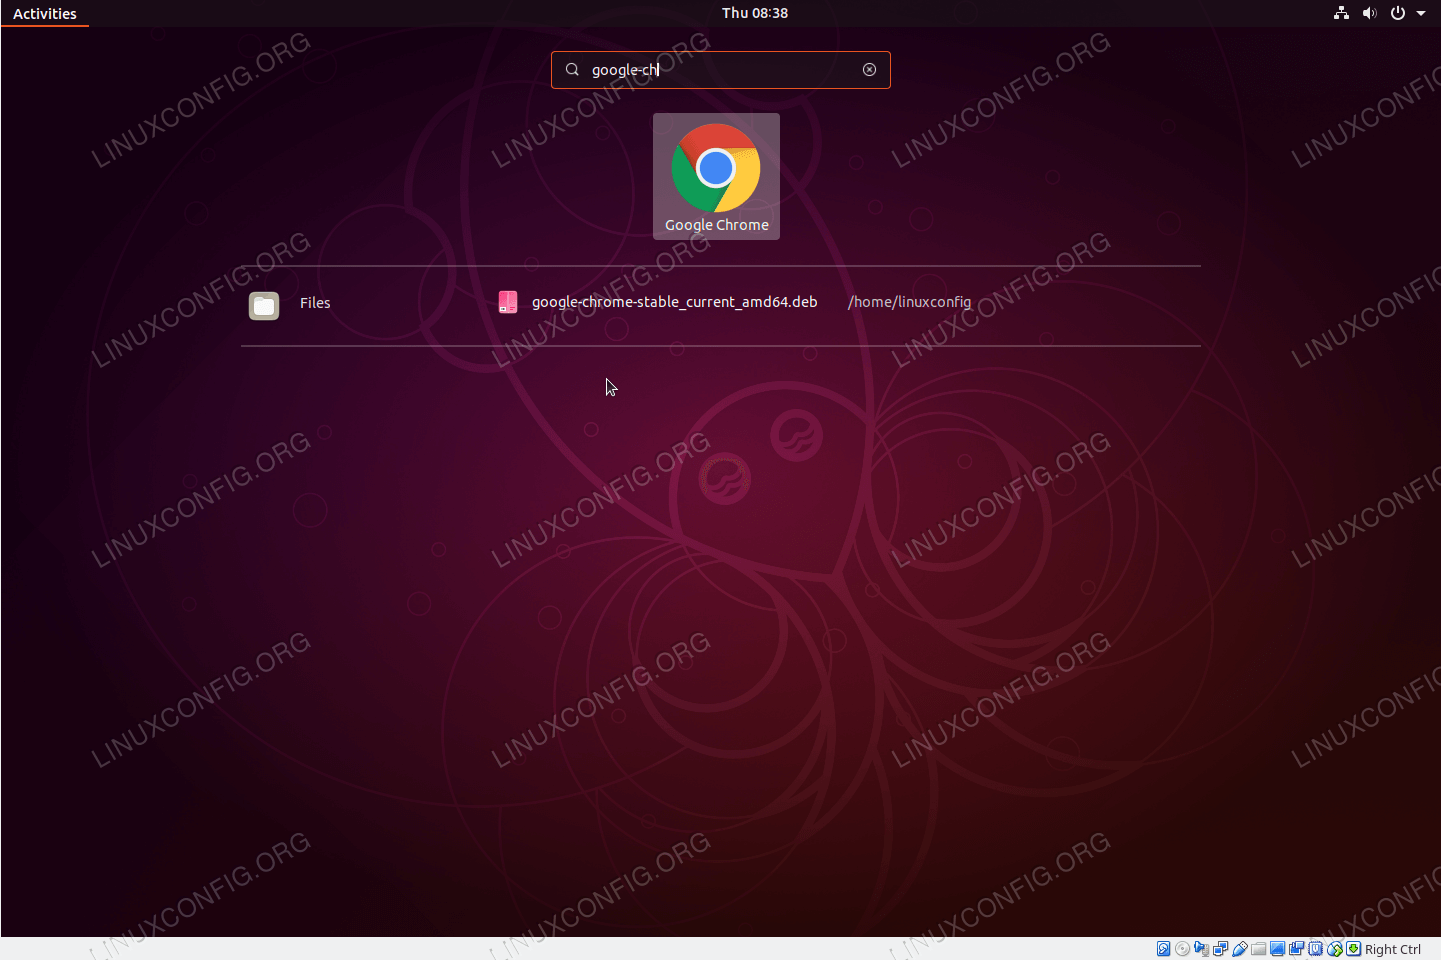 Launch Google Chrome browser from Ubuntu 18.10 Activity menu.